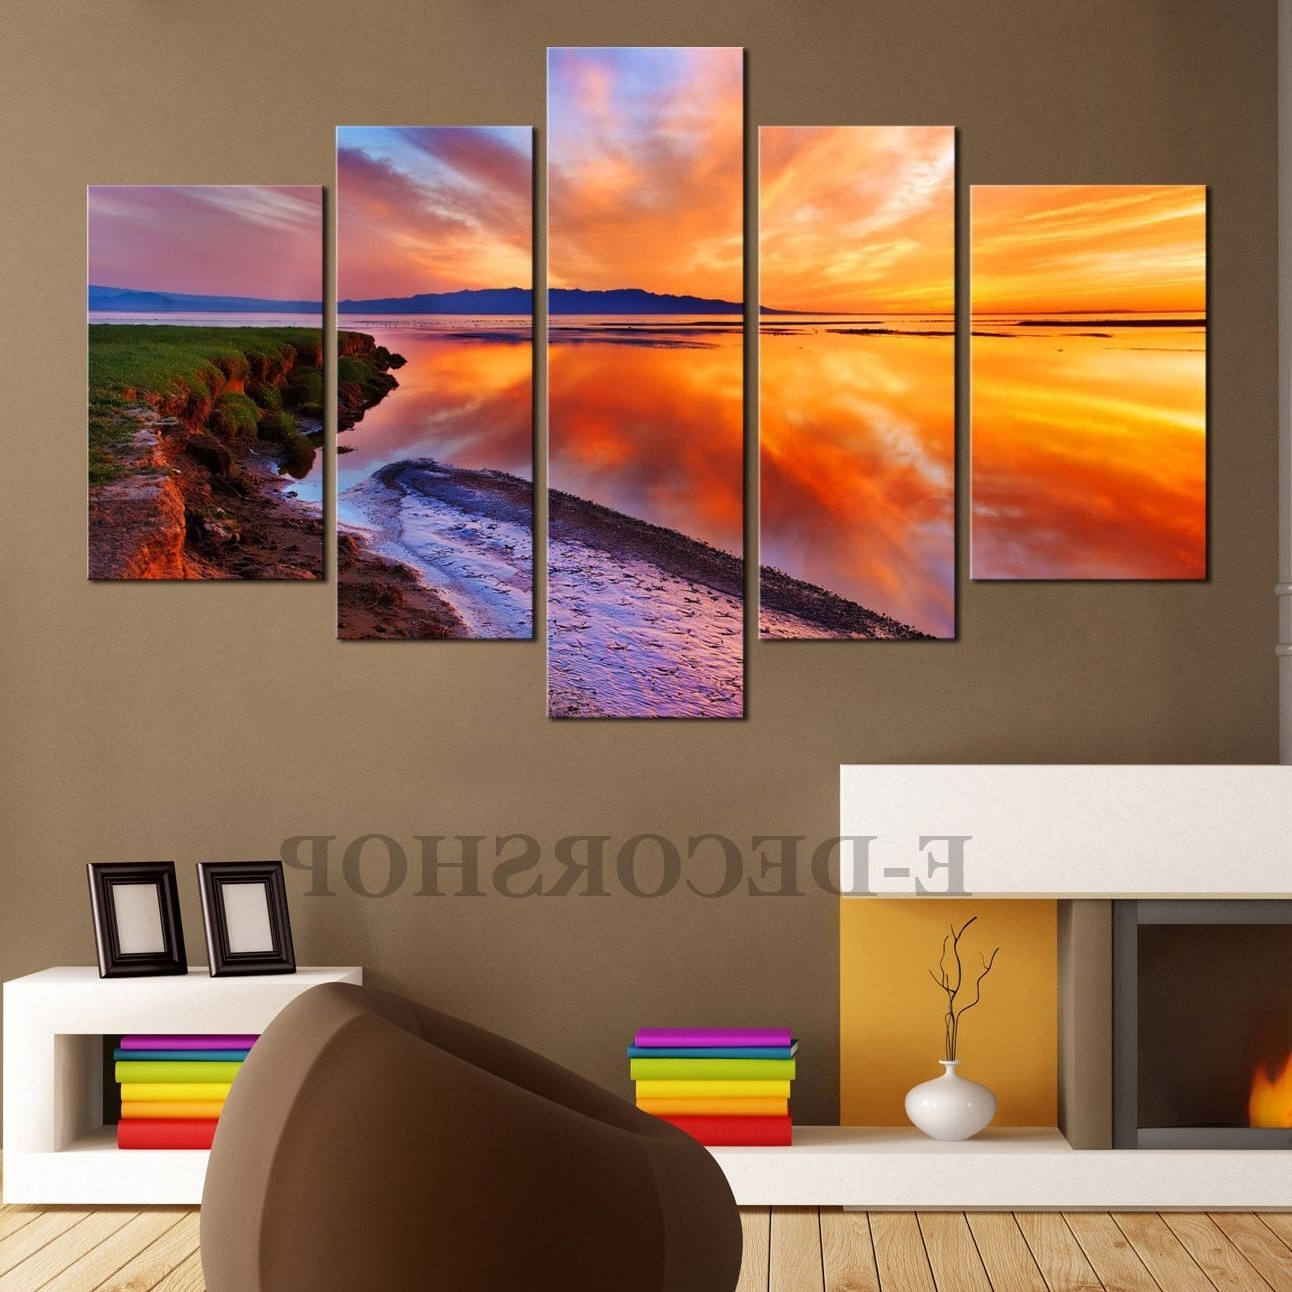 Large Canvas Wall Art – Sunset 5 Piece Canvas Art Print For Home For Newest Large Canvas Wall Art (View 9 of 15)